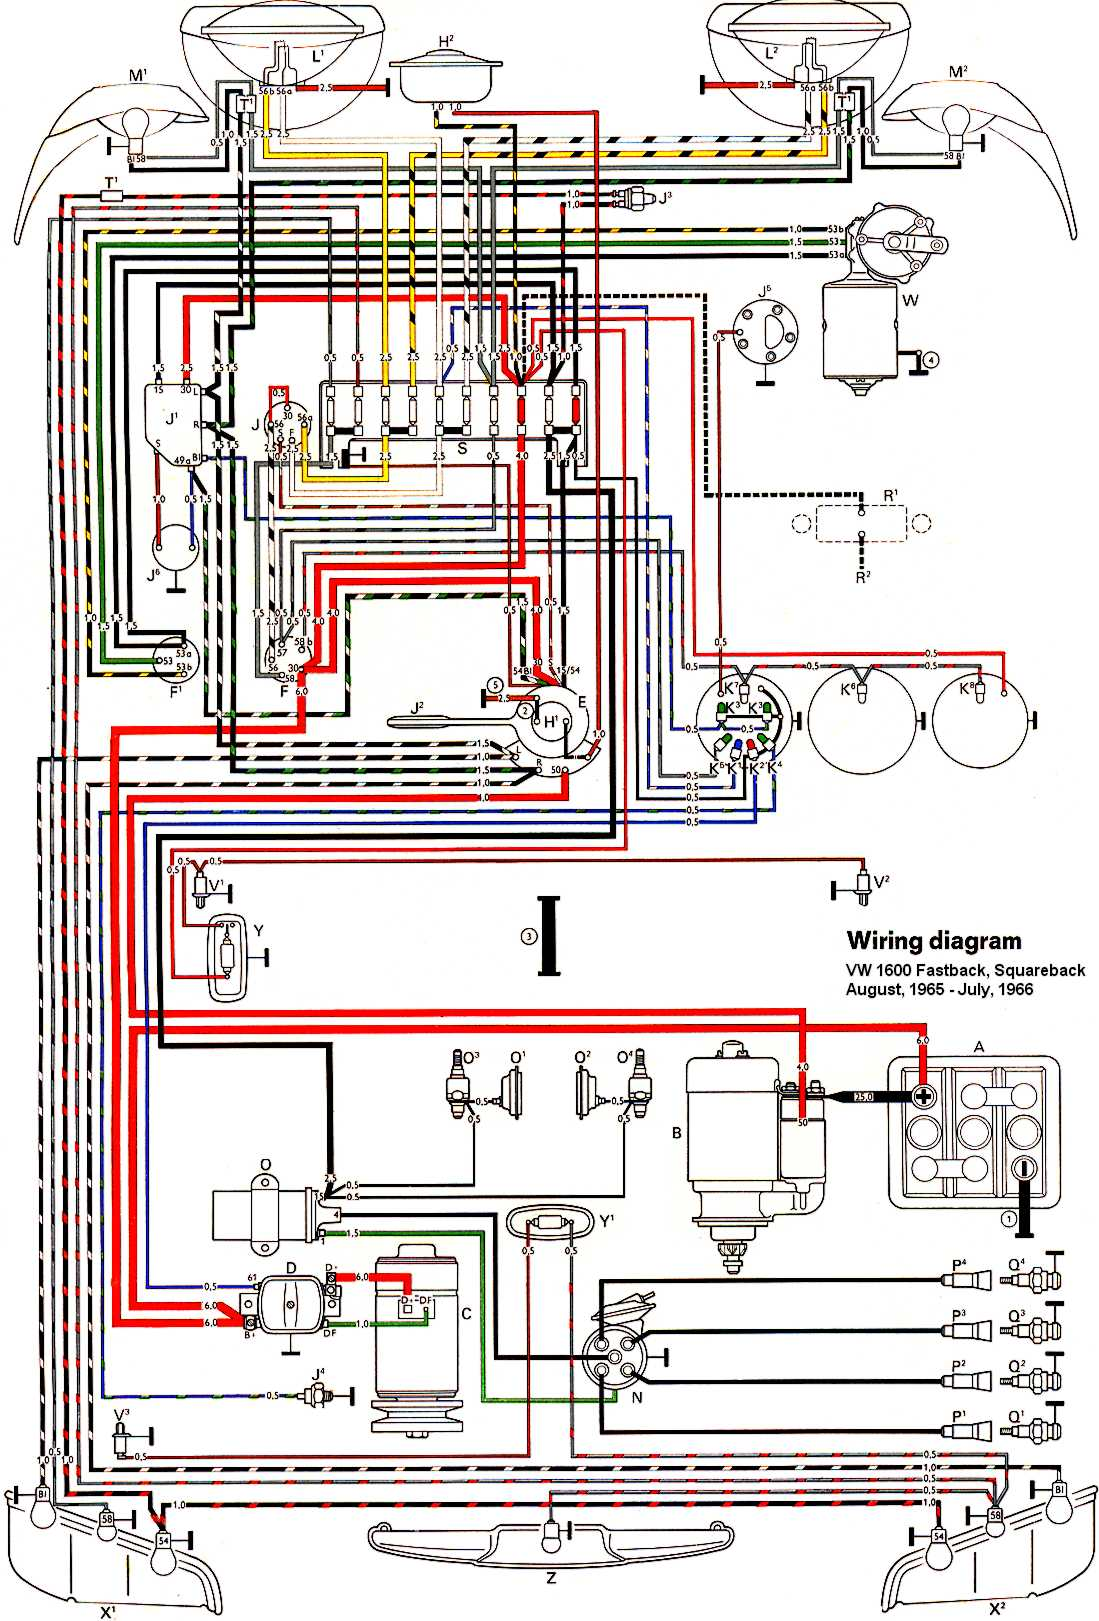 type3_1600_66 vw bus wiring diagram 1965 vw bus wiring diagram \u2022 wiring diagrams 1970 vw bug wiring diagram at creativeand.co